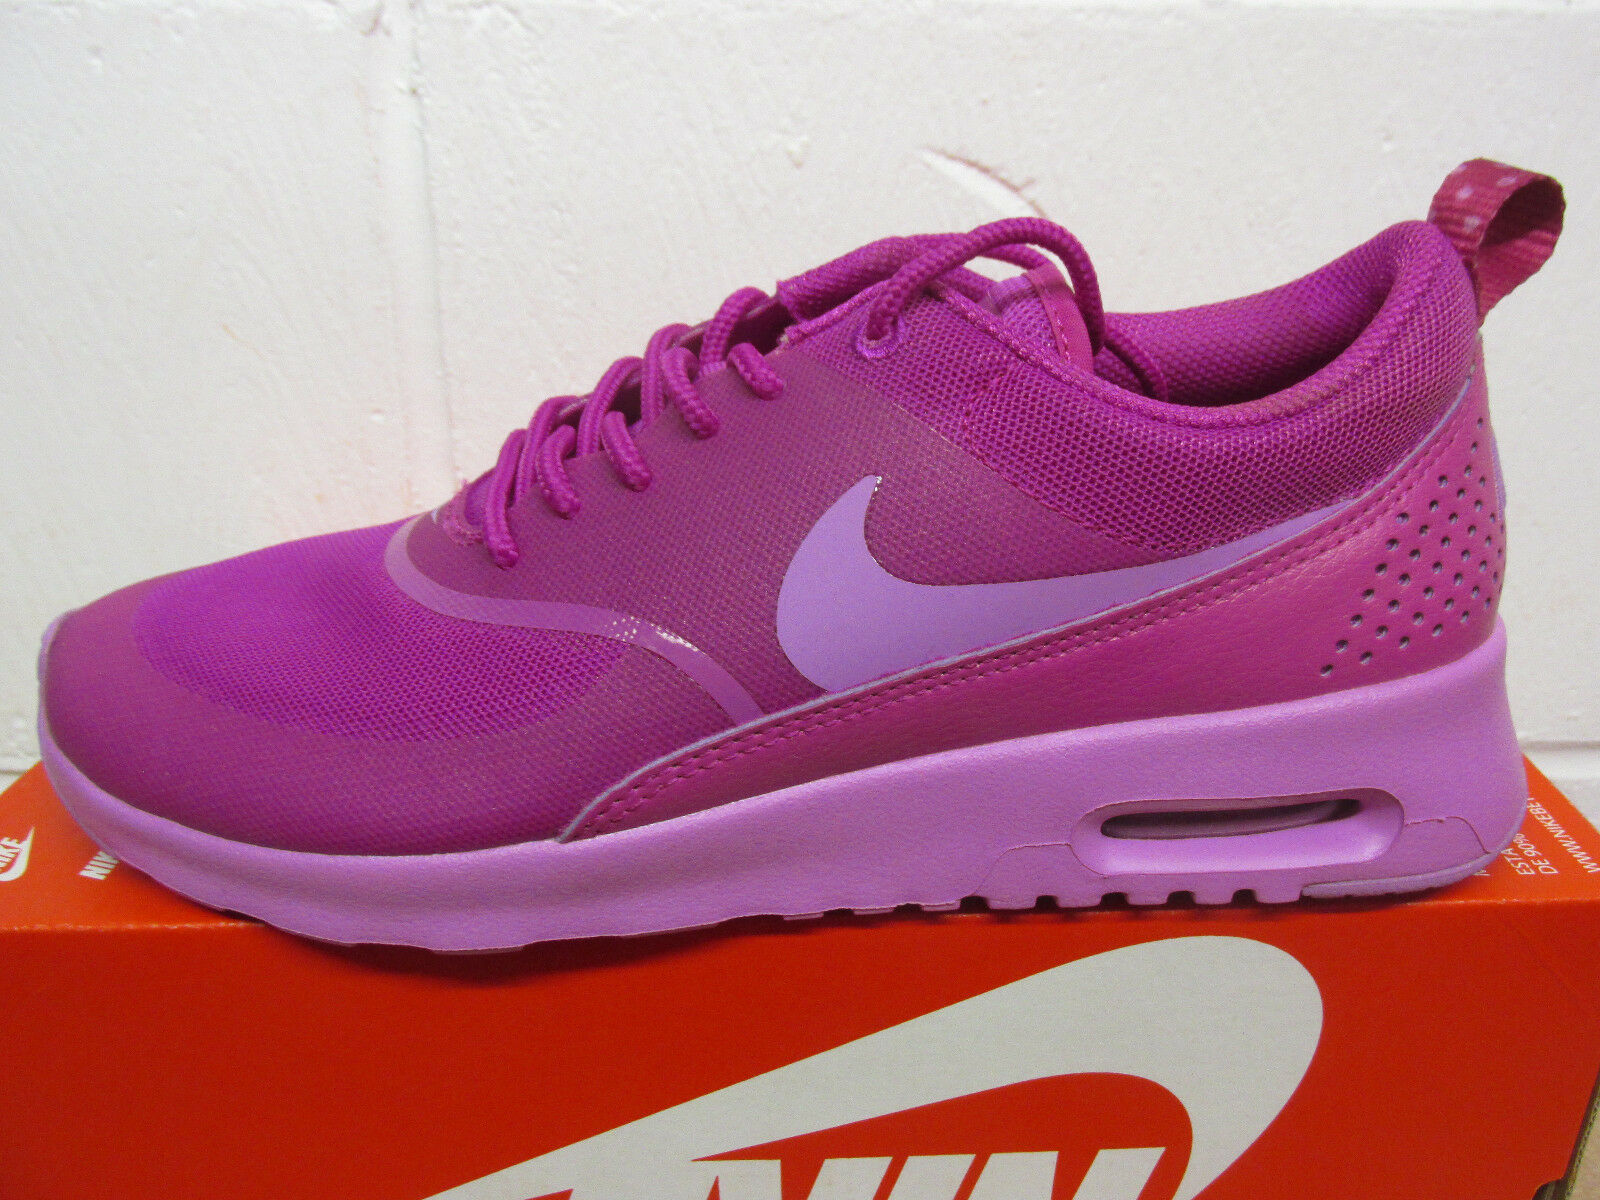 nike womens air max thea running trainers 599409 502 sneakers shoes CLEARANCE